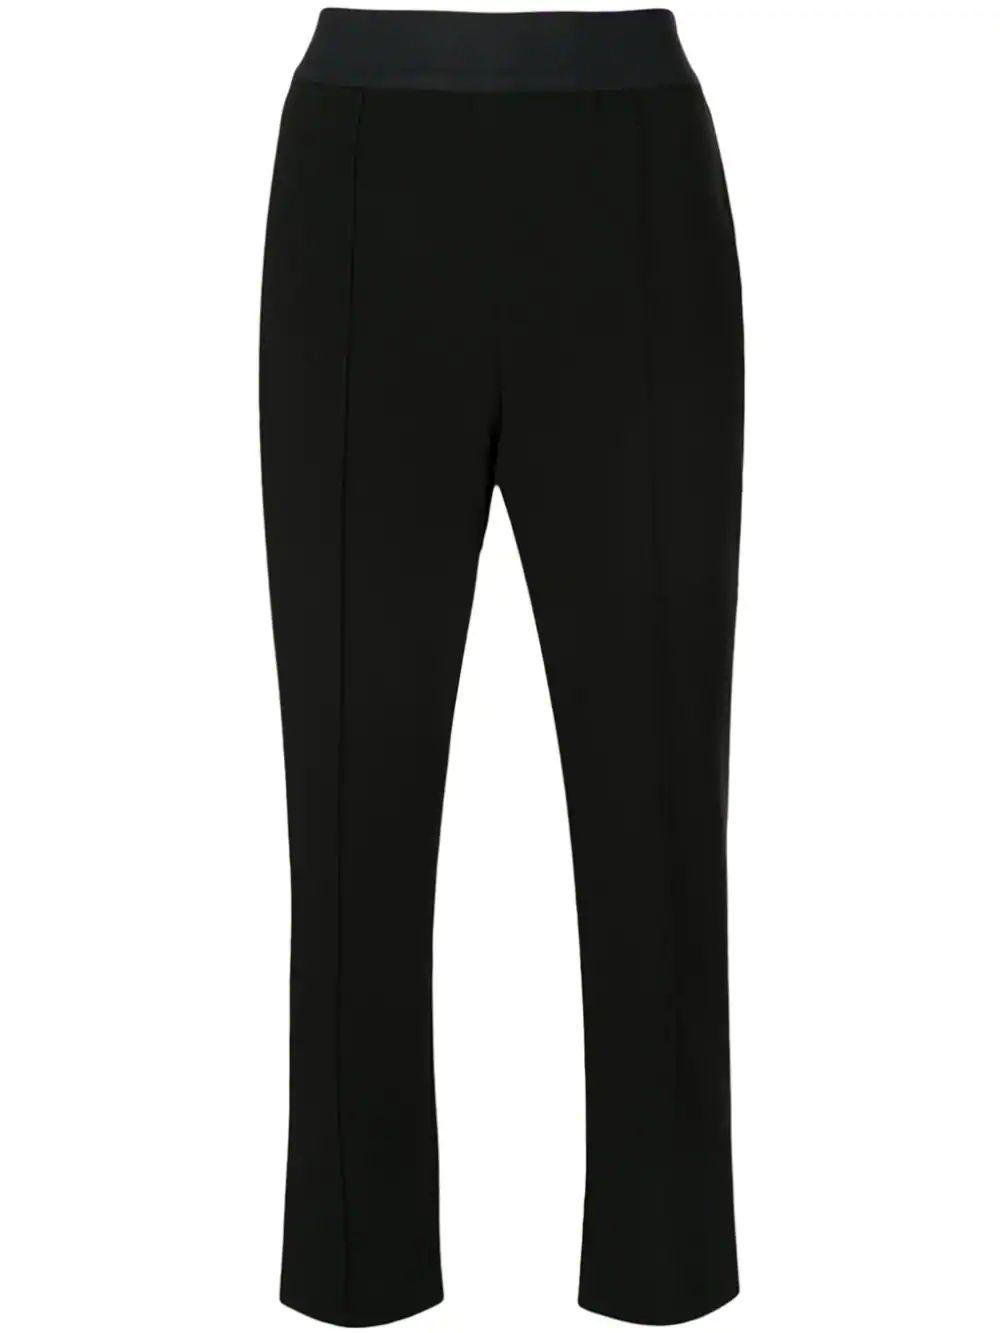 Atticus Crop Front Seam Pull On Pant